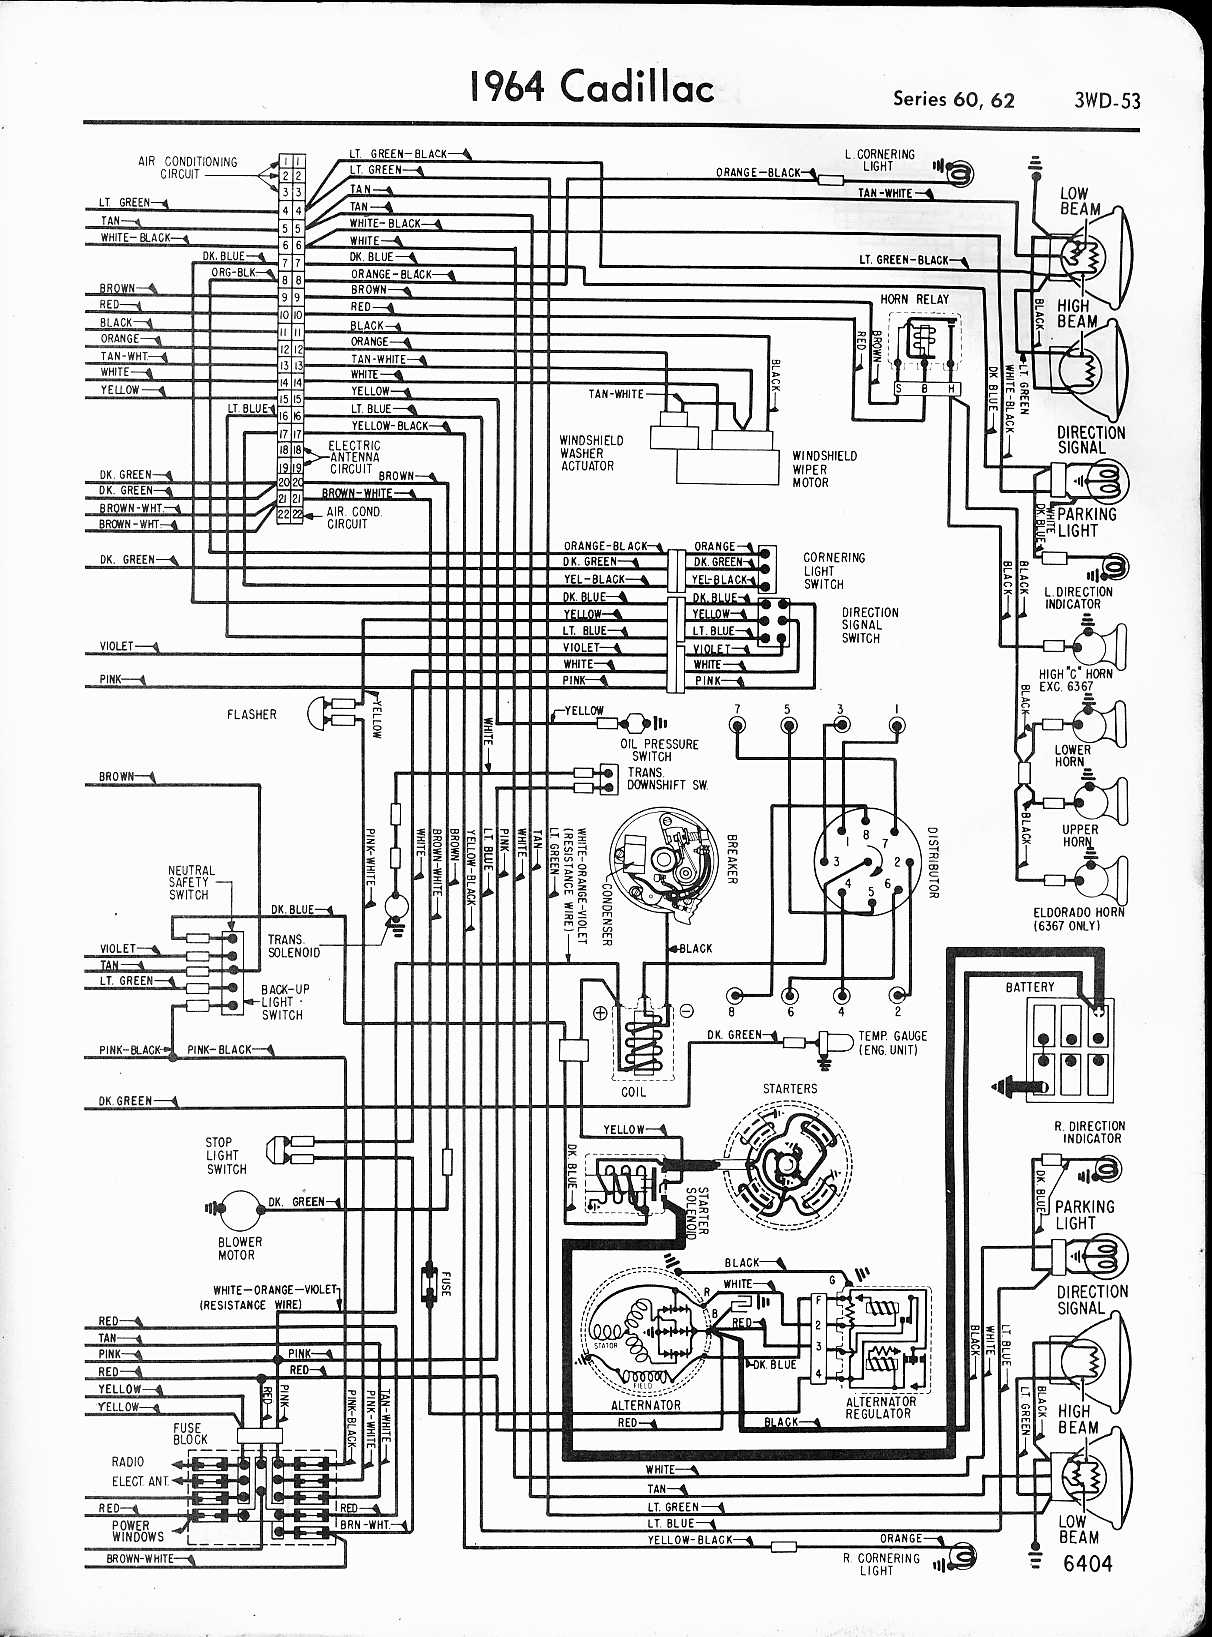 Cadillac Wiring Diagrams 1957 1965 Diagram Alternator Regulator 1964 Series 60 62 Left